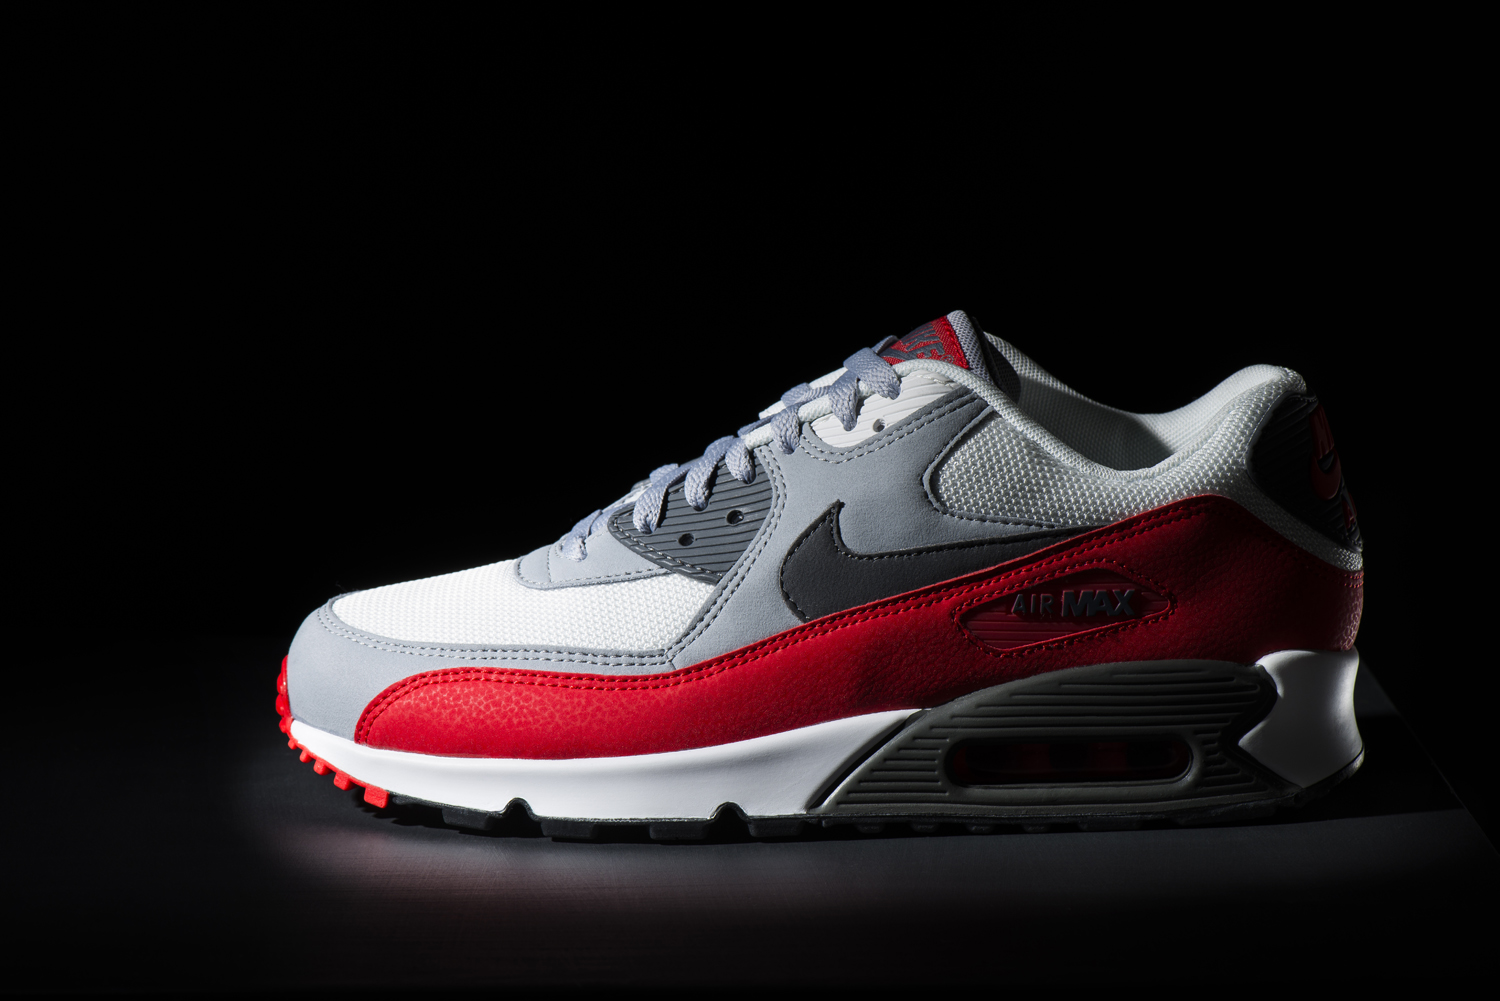 Nike Air Max Foot Locker España